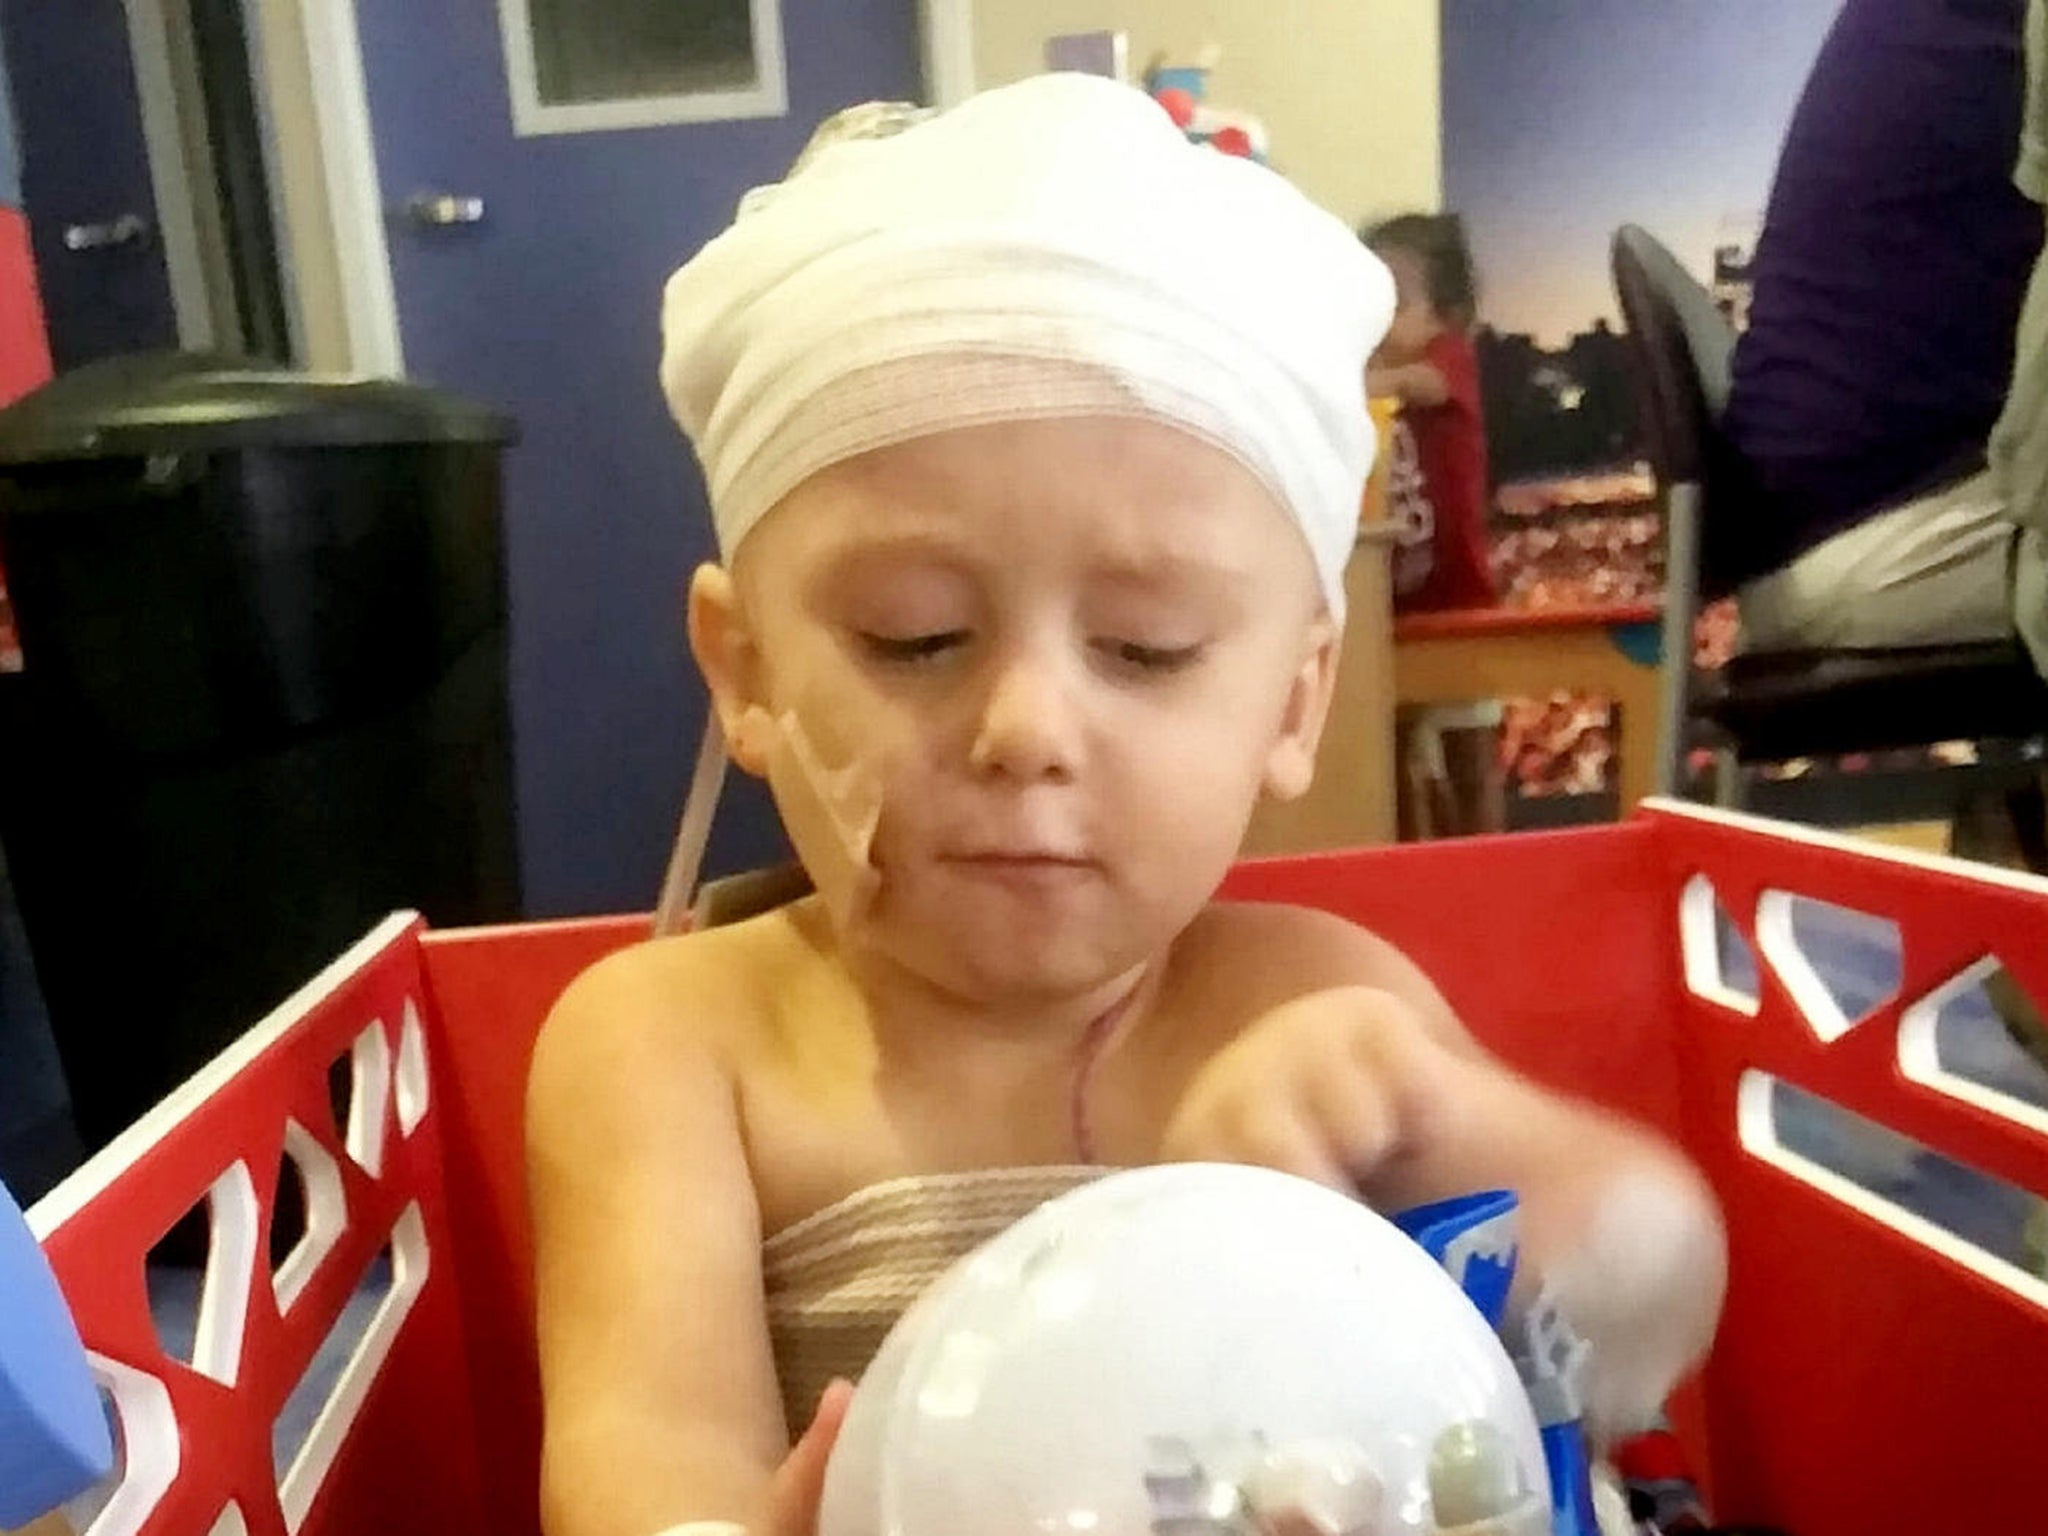 Two-year-old partially scalped after family friend reverses over him in driveway